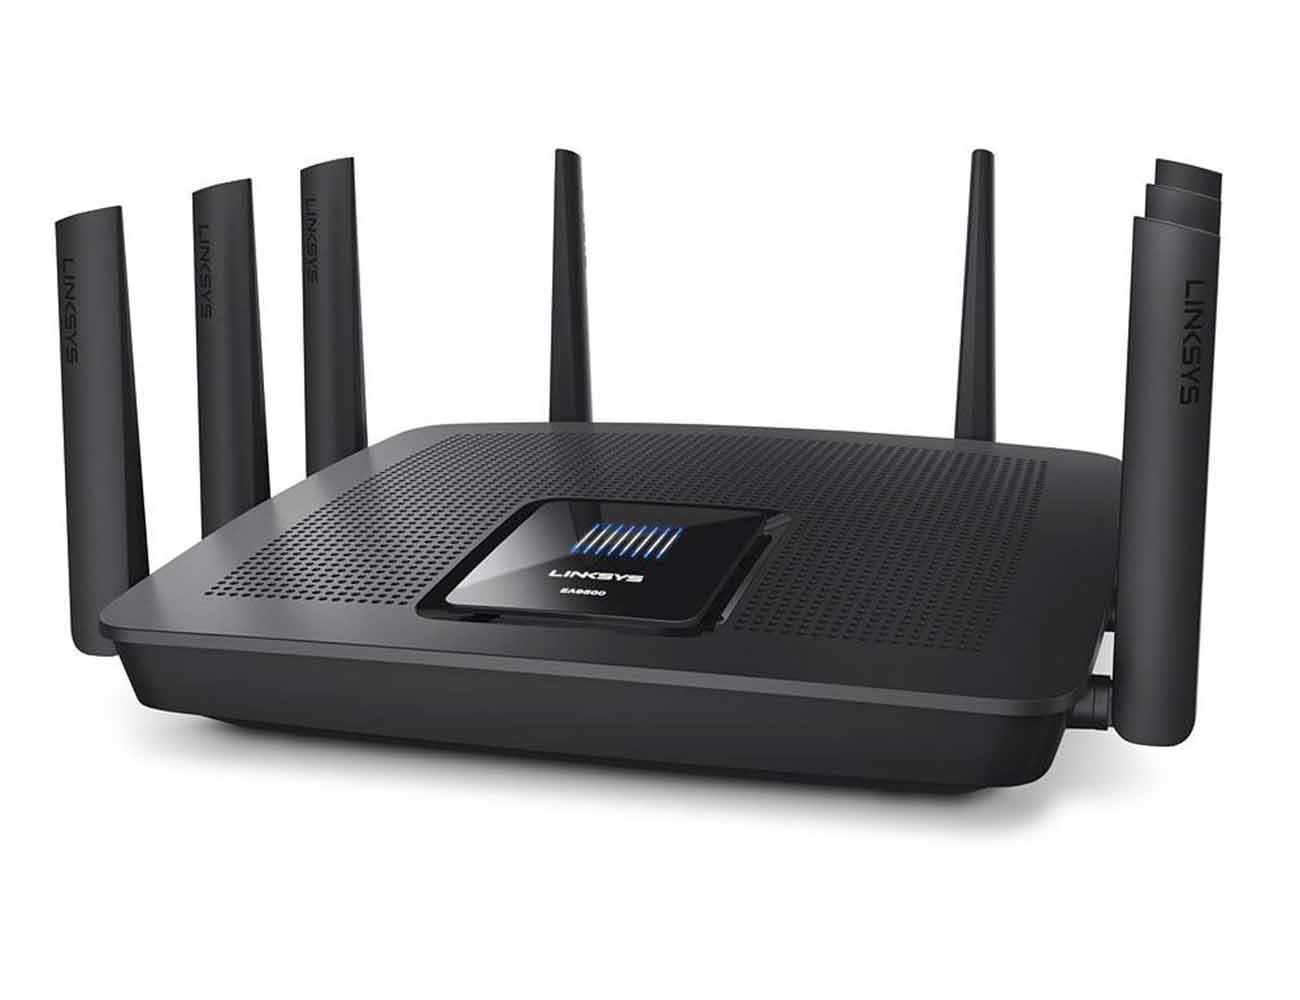 Linksys EA9500 Super Fast Router